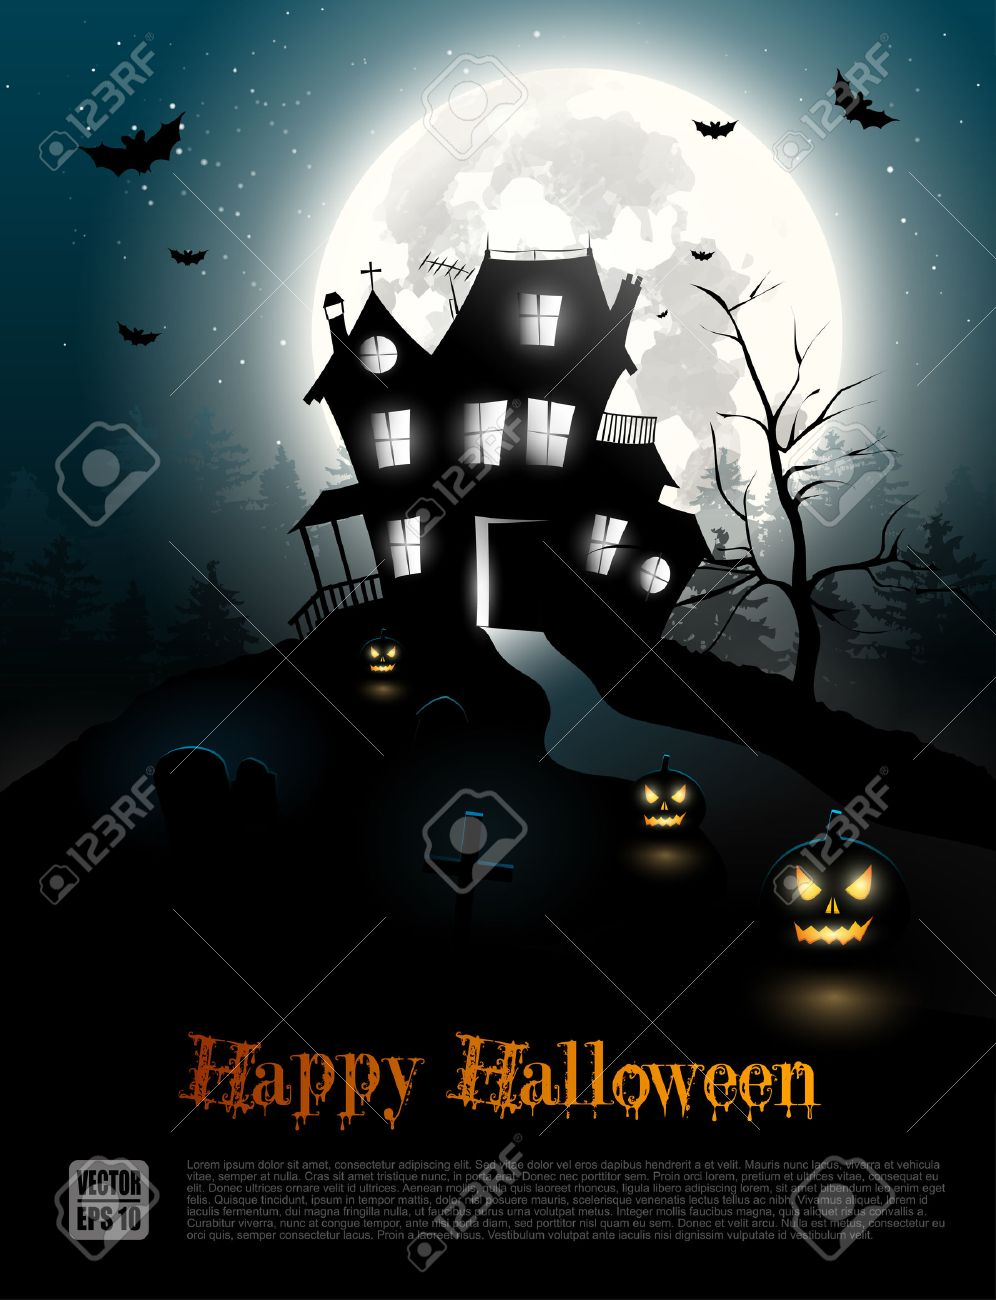 94,735 Halloween Backgrounds Stock Vector Illustration And Royalty ...